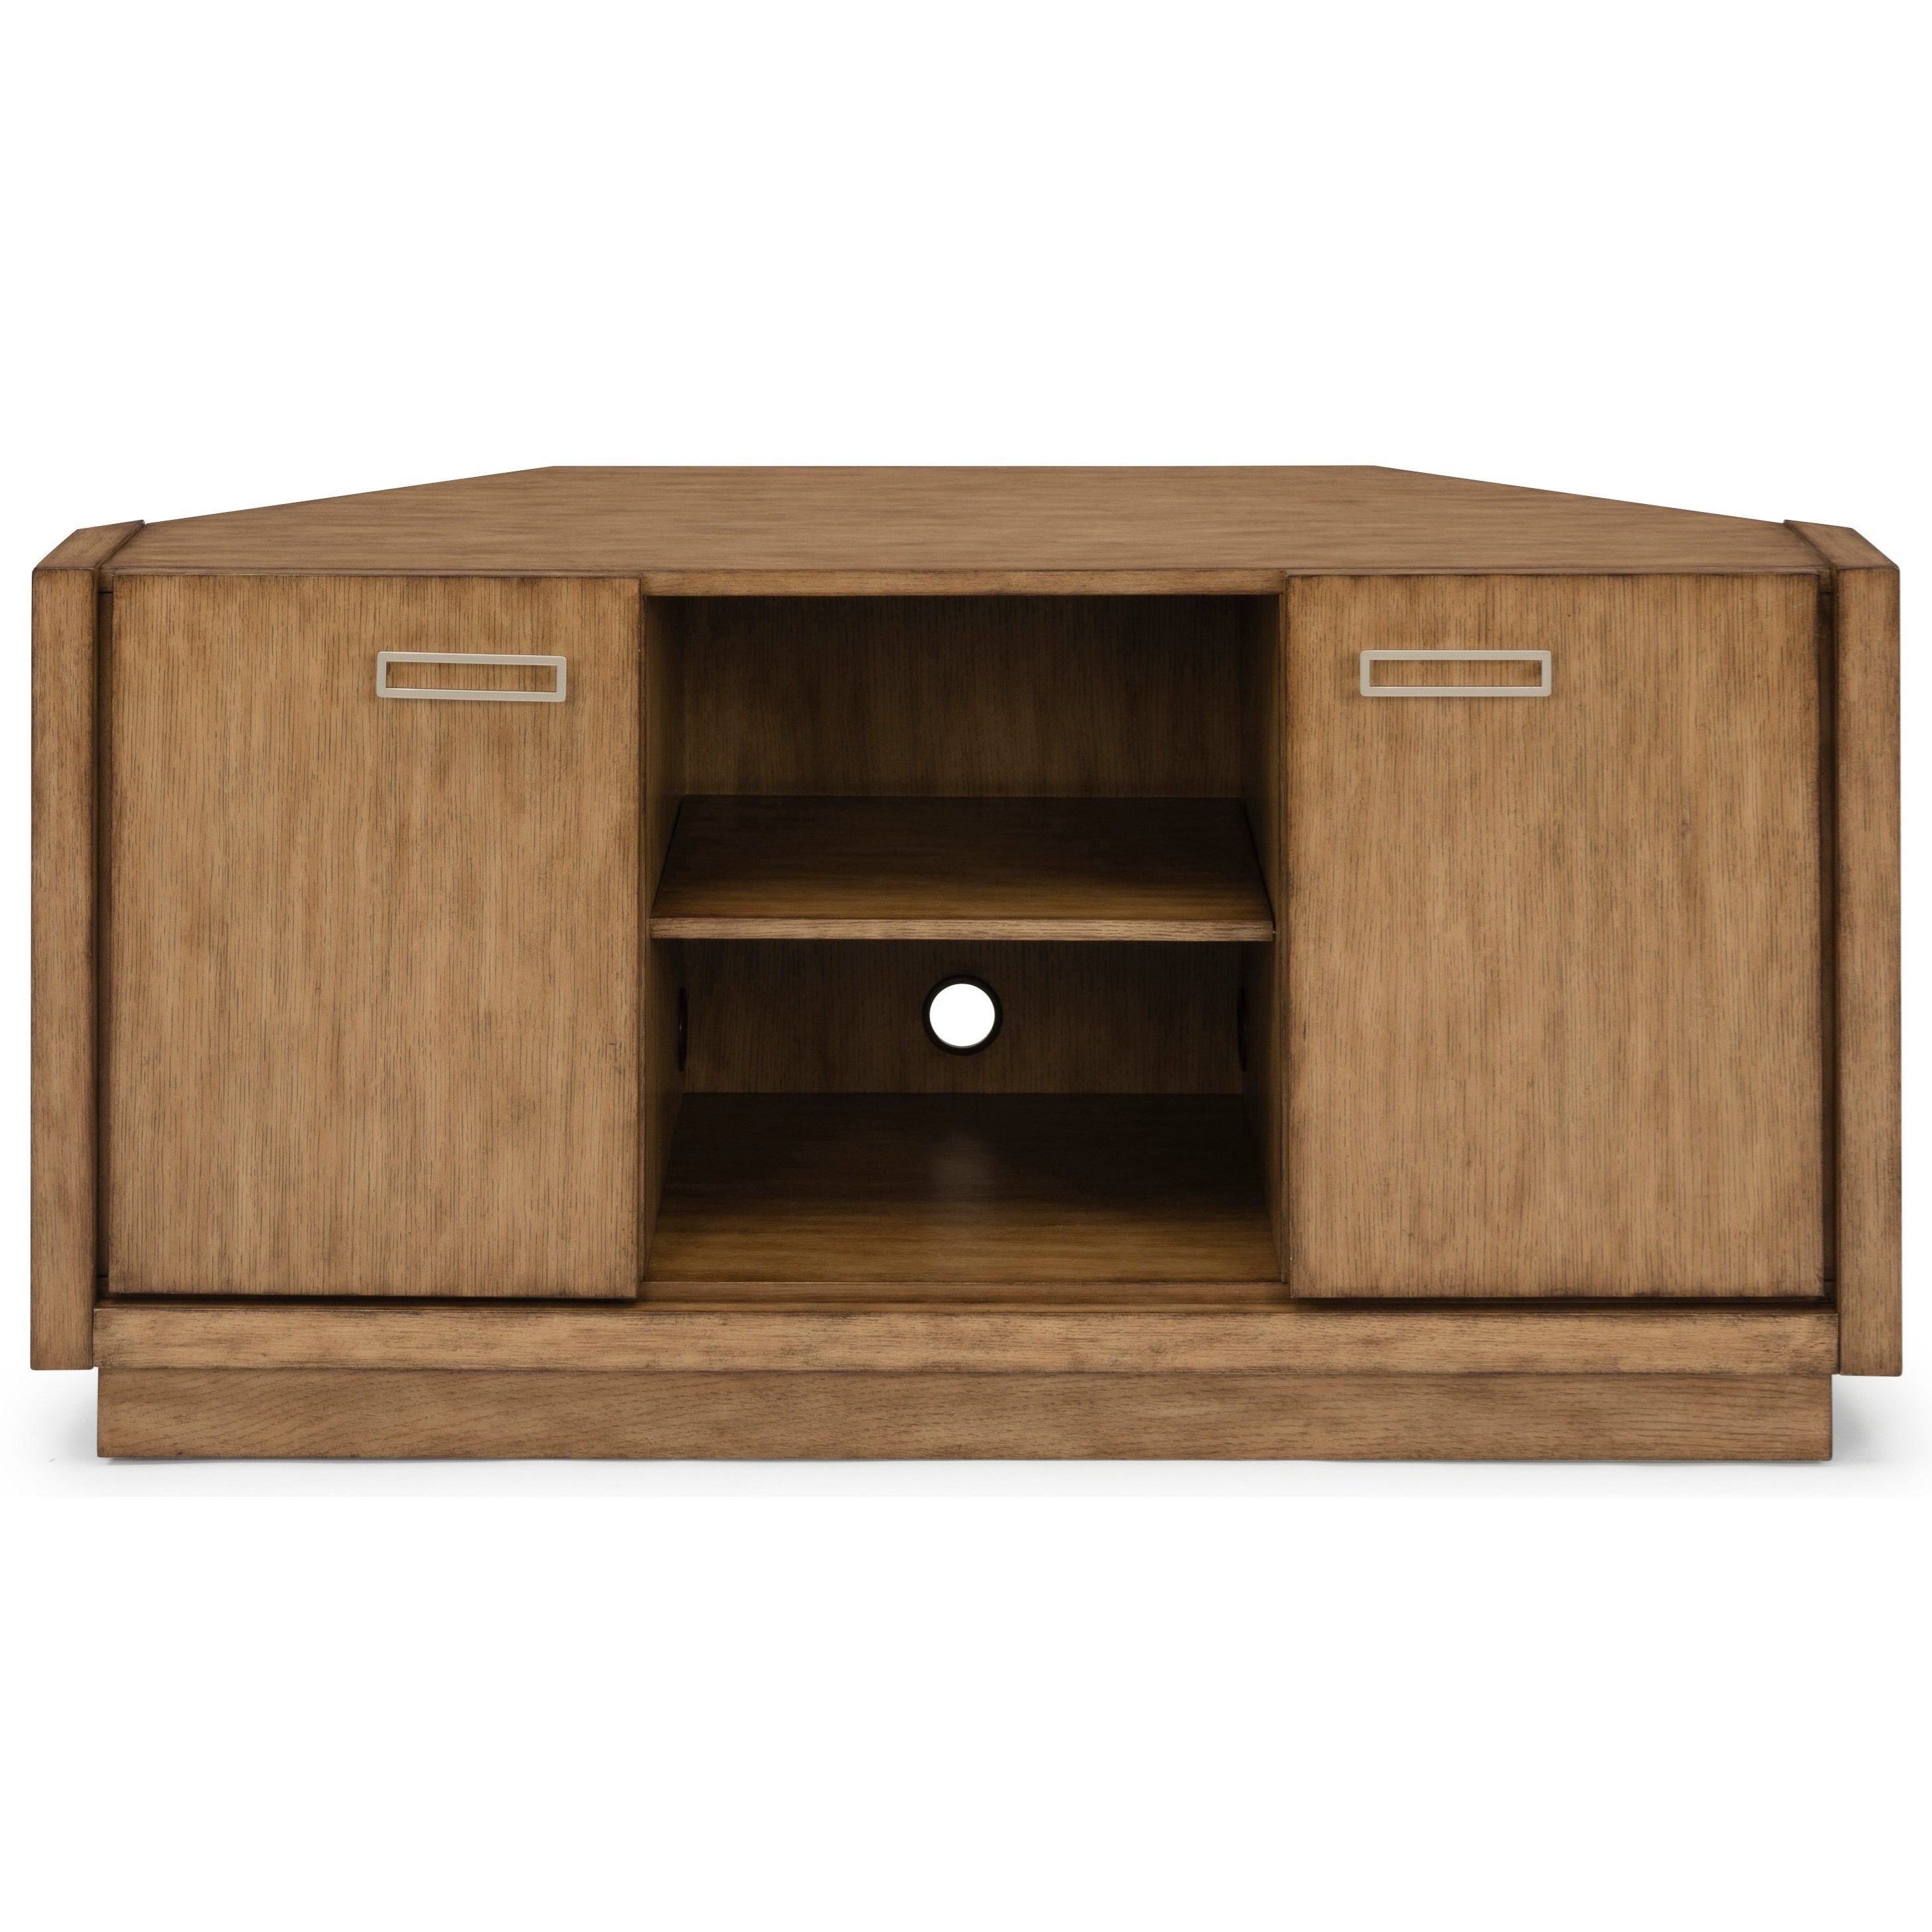 Big Sur Corner TV Stand by Homestyles at Fisher Home Furnishings